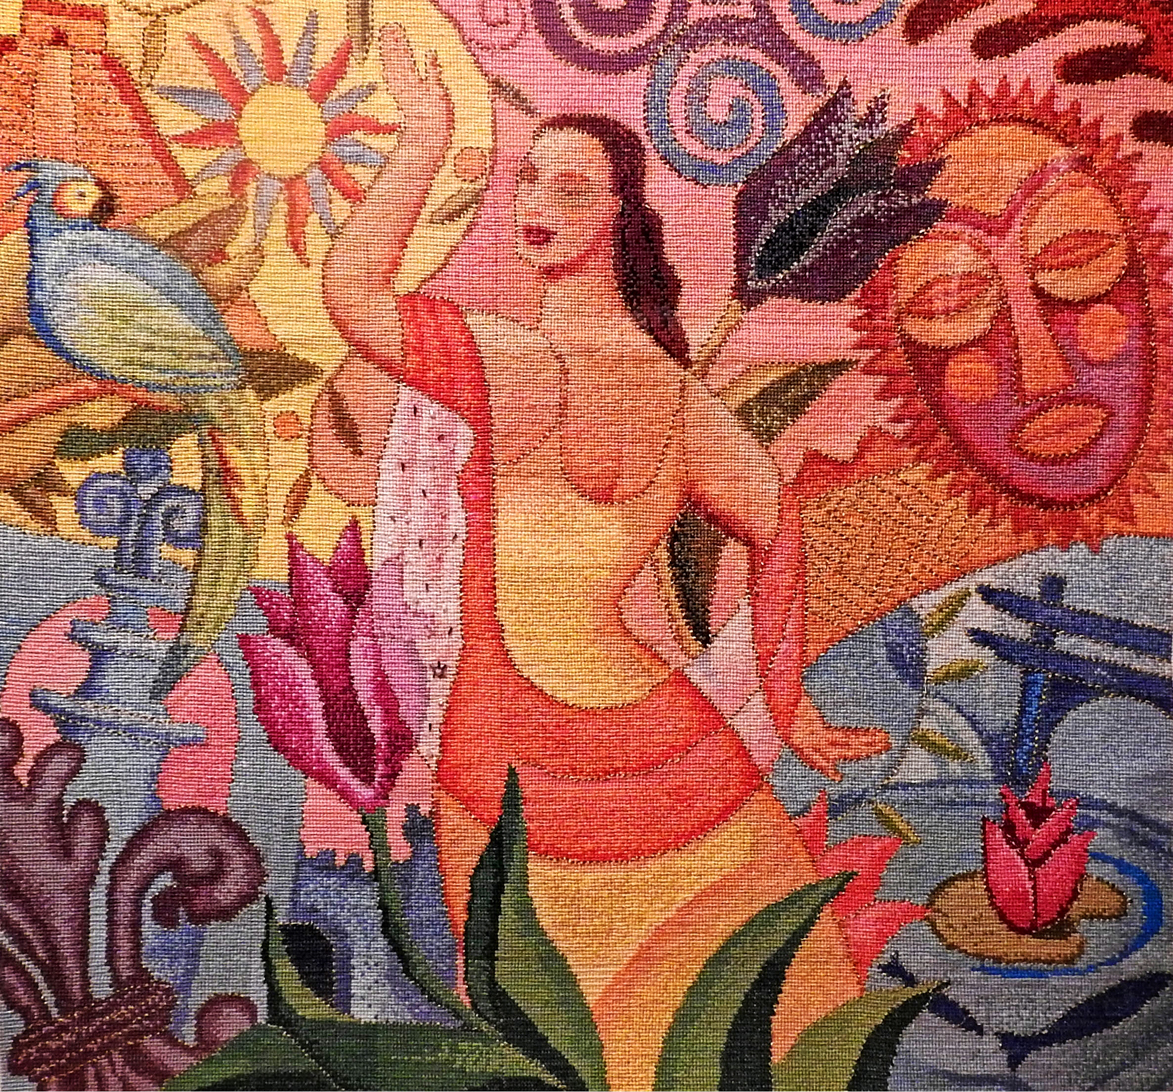 IMMORTAL WOMAN artwork by Irina Starks - art listed for sale on Artplode